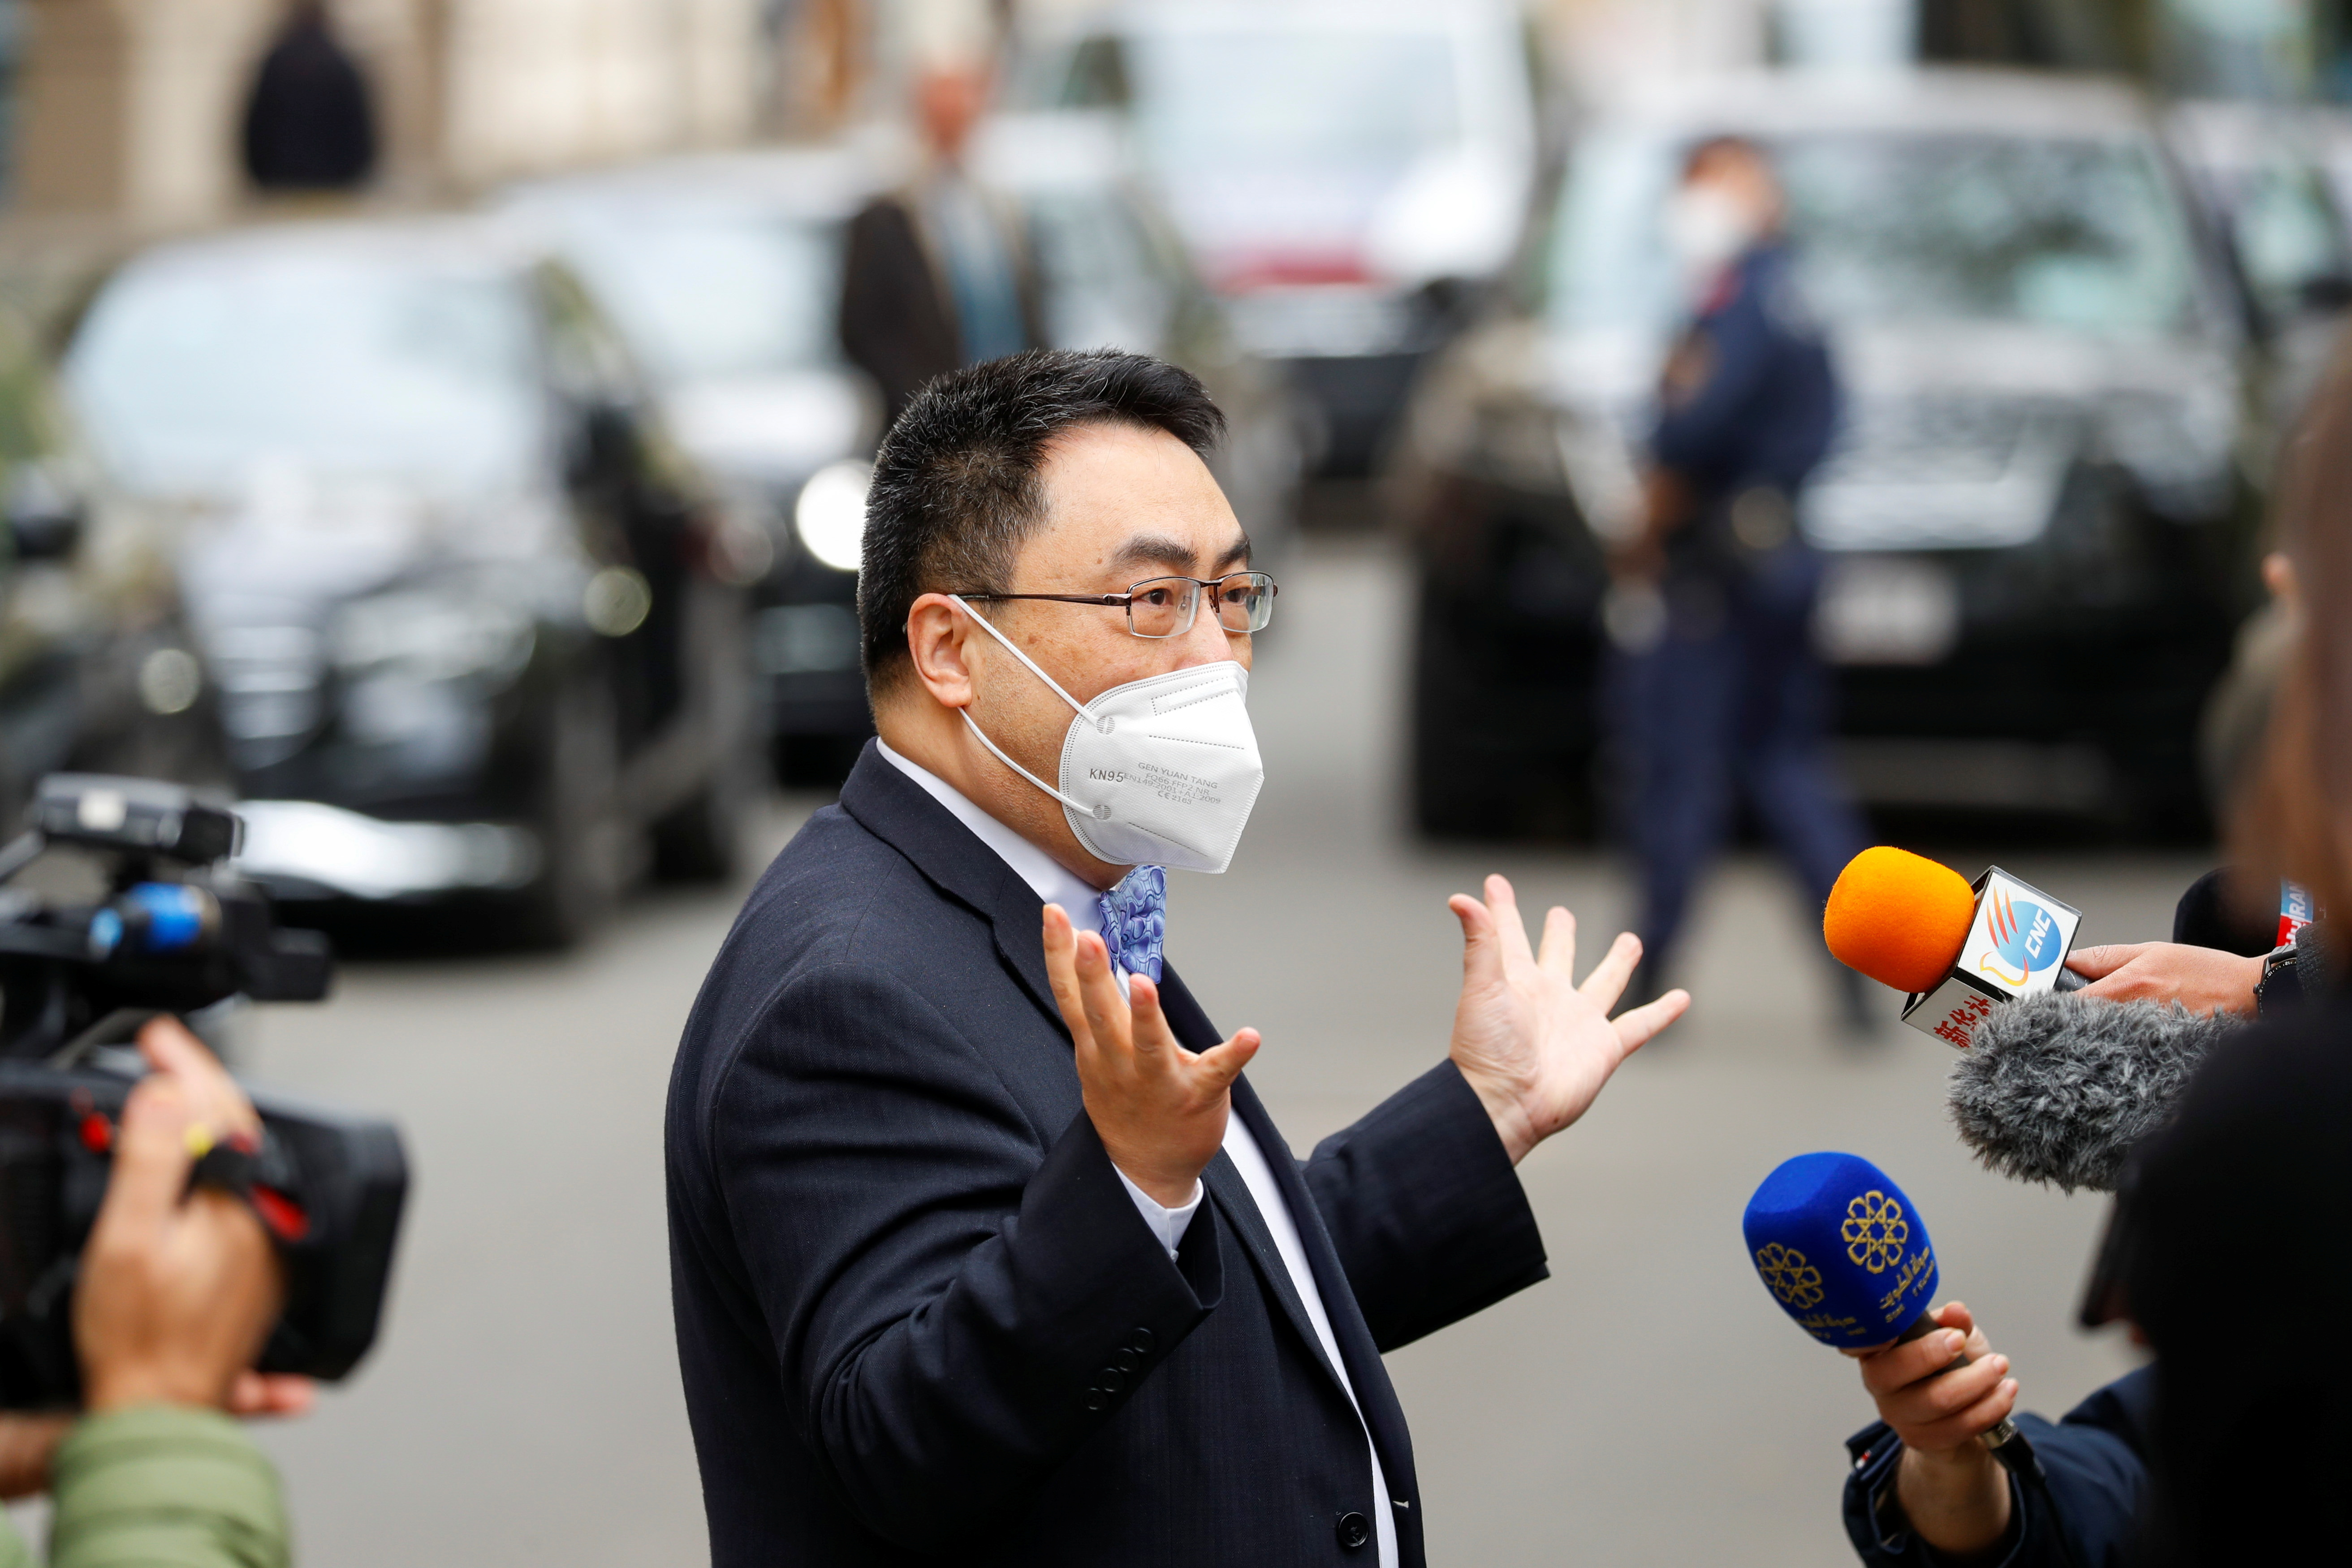 The ambassador of the Permanent Mission of the People's Republic of China to the United Nations, Wang Qun, speaks to the media as the meeting of the JCPOA Joint Commission takes place in Vienna, Austria, April 27, 2021. REUTERS/Leonhard Foeger